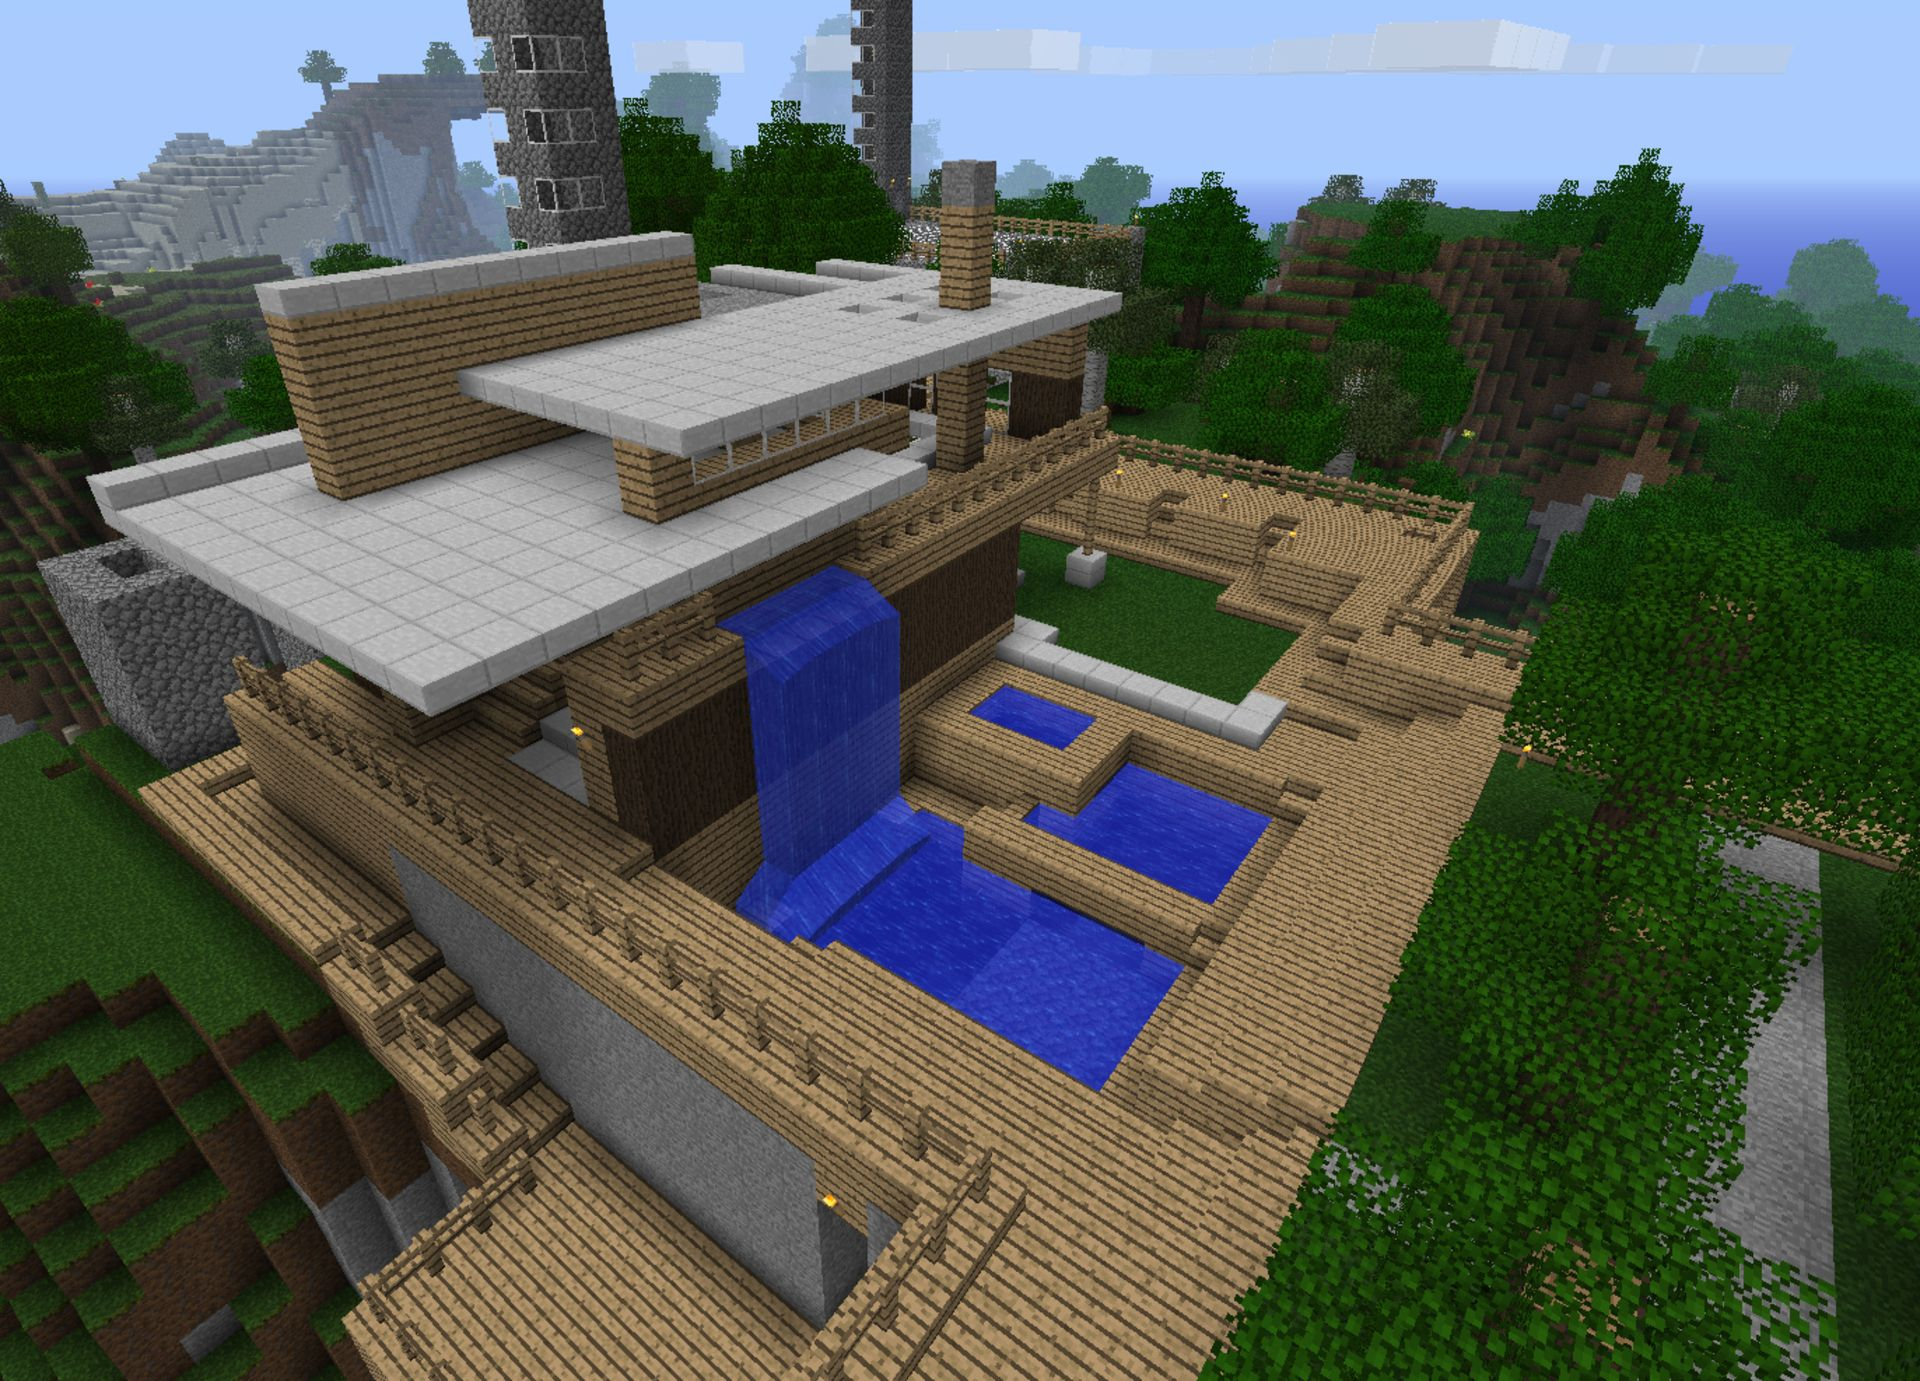 Minecraft Interior Design Living Room Cool Minecraft Houses Hd Background Wallpaper 24 Hd Wallpapers